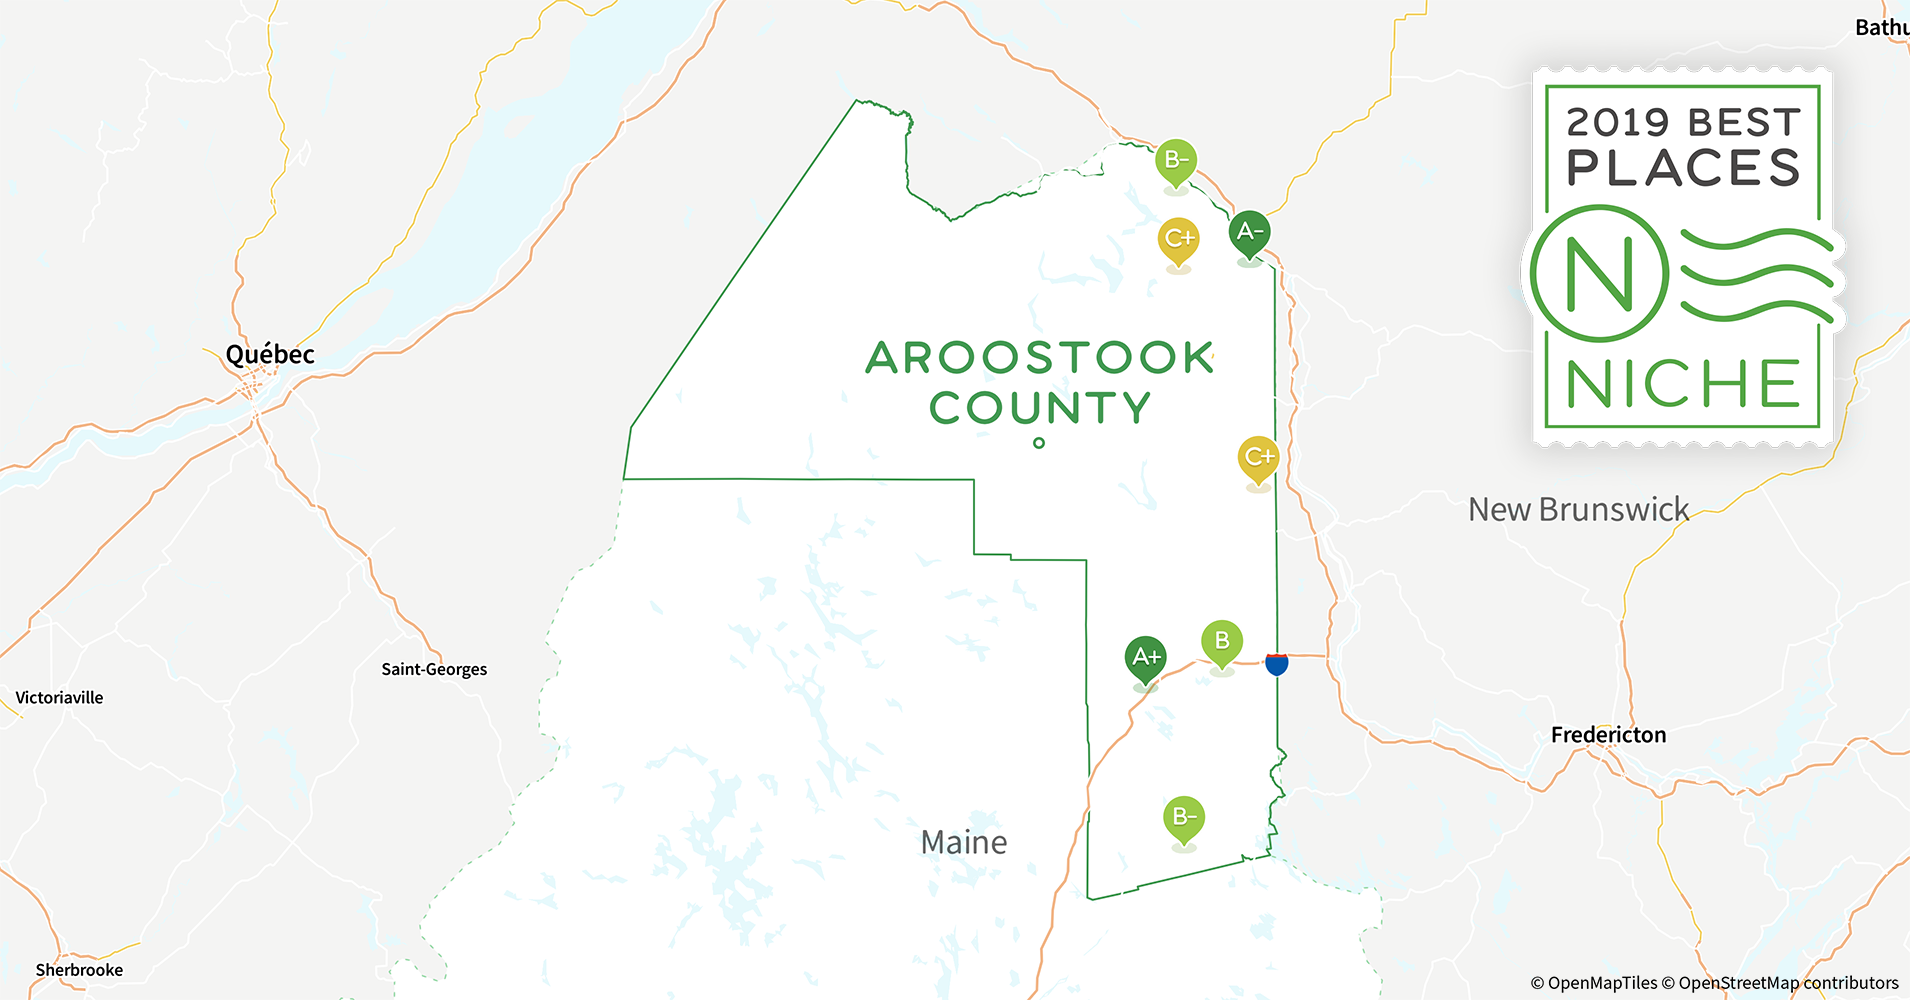 2019 Best Places To Live In Aroostook County Me Niche